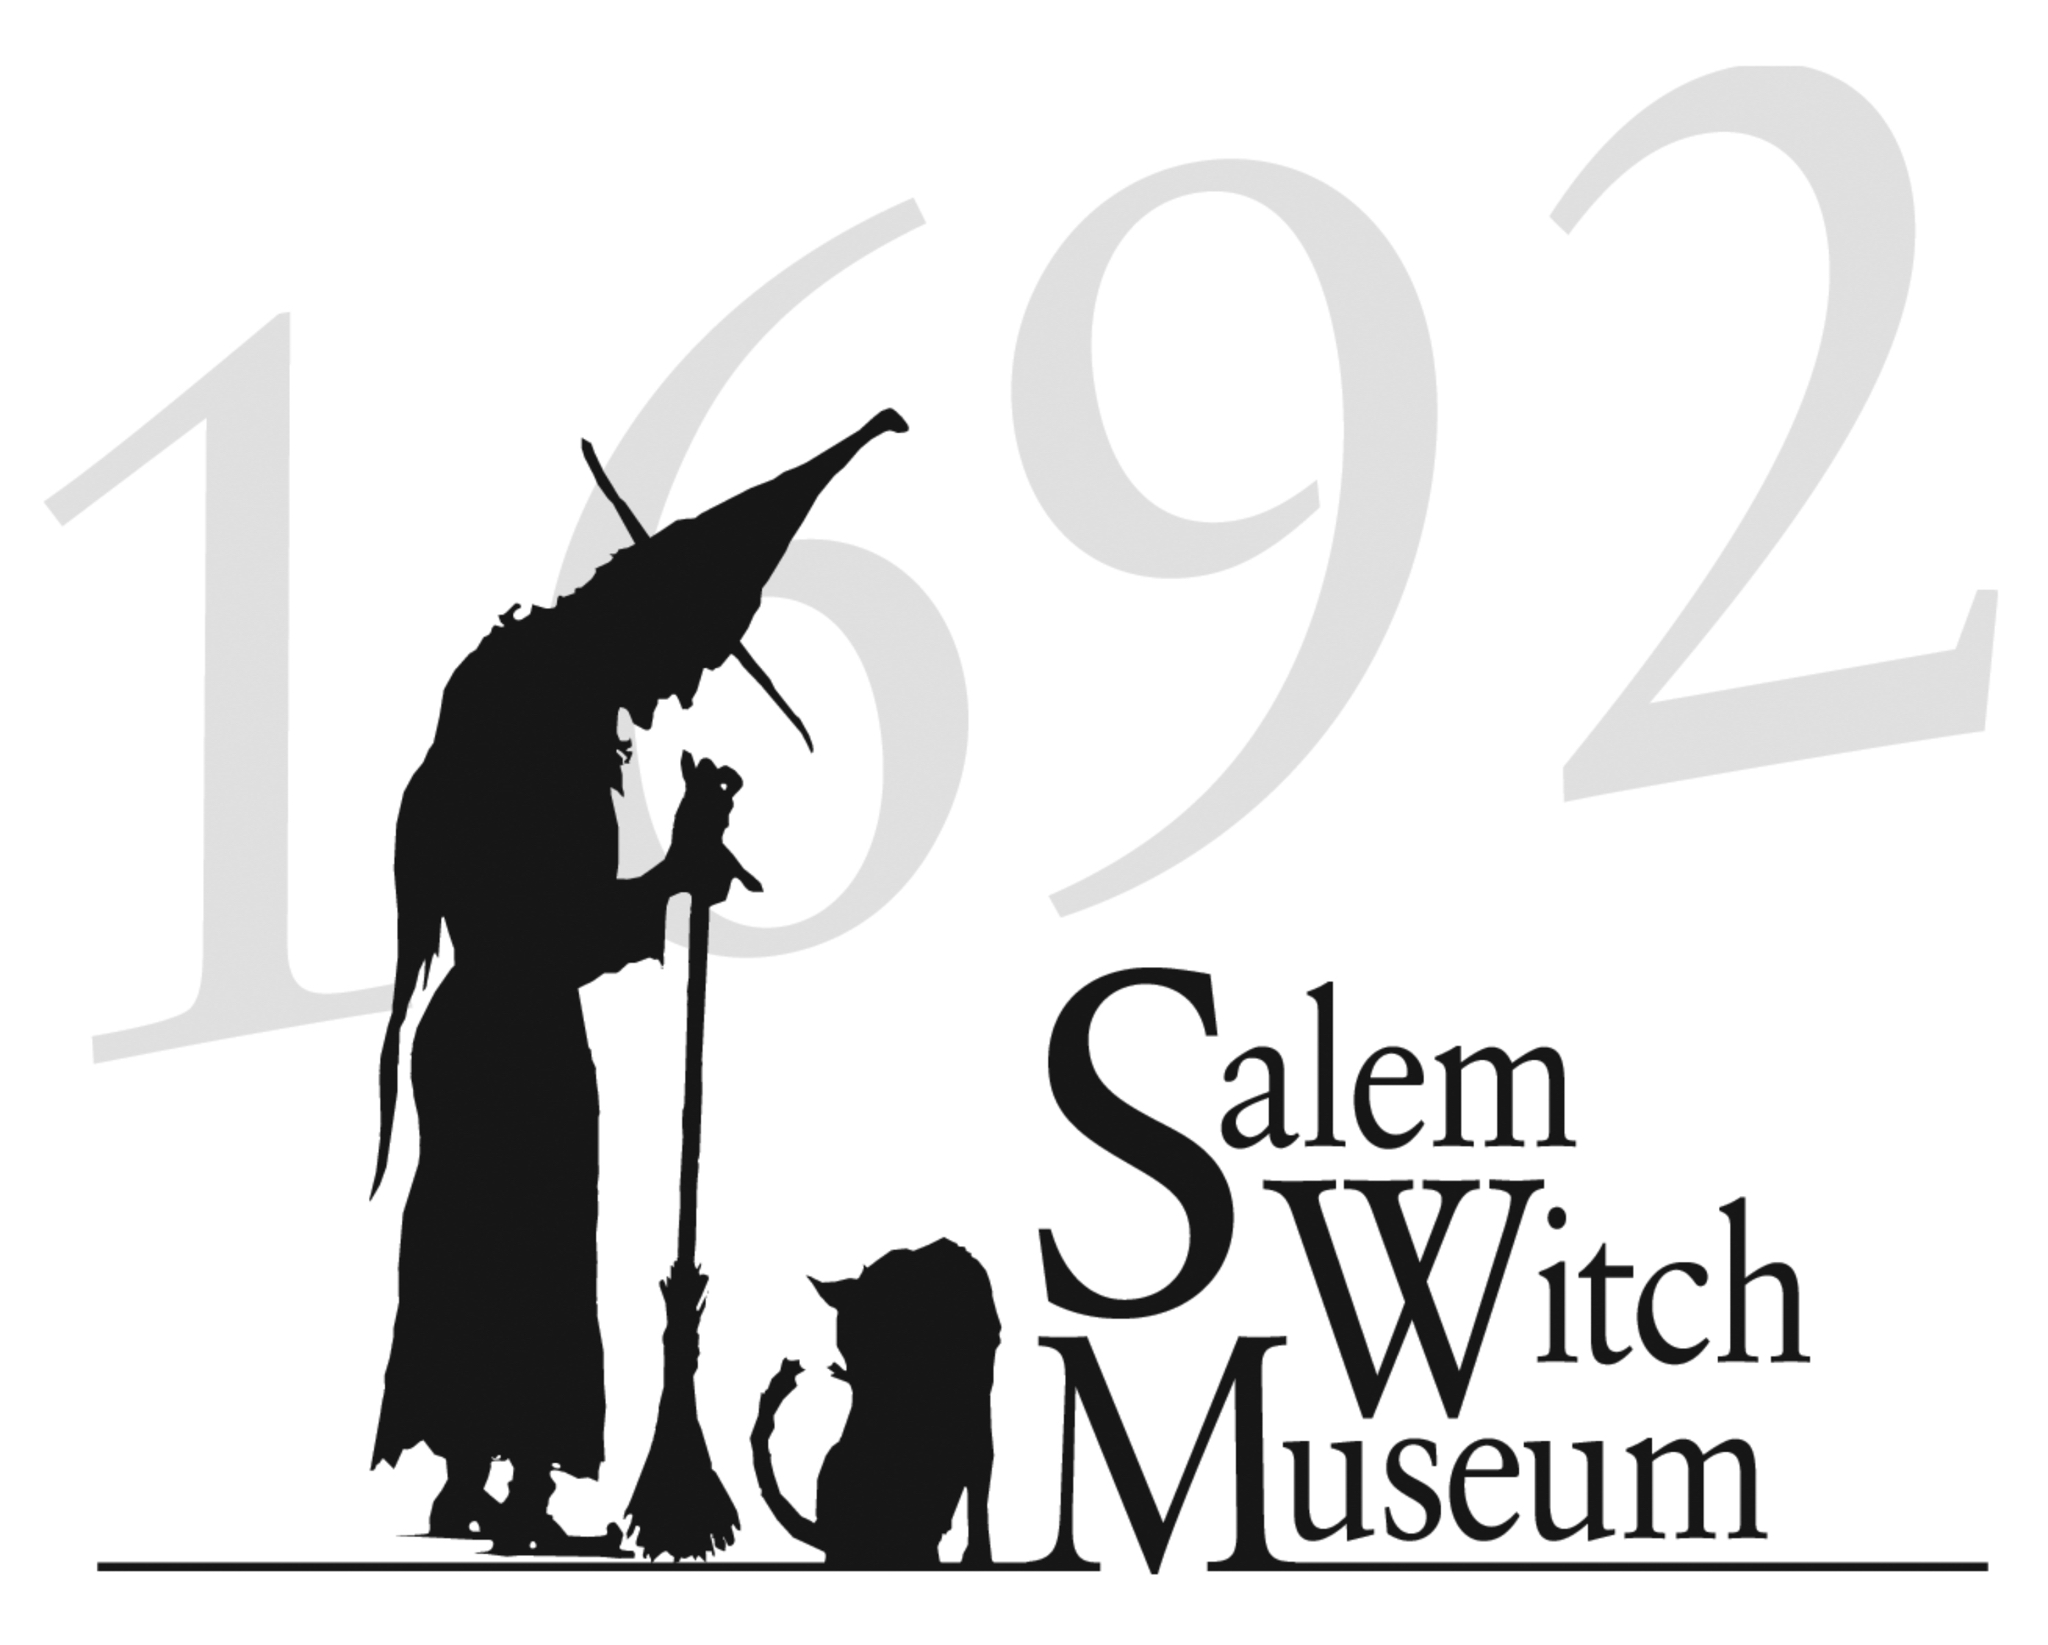 Salem Witch Museum tourism.jpg